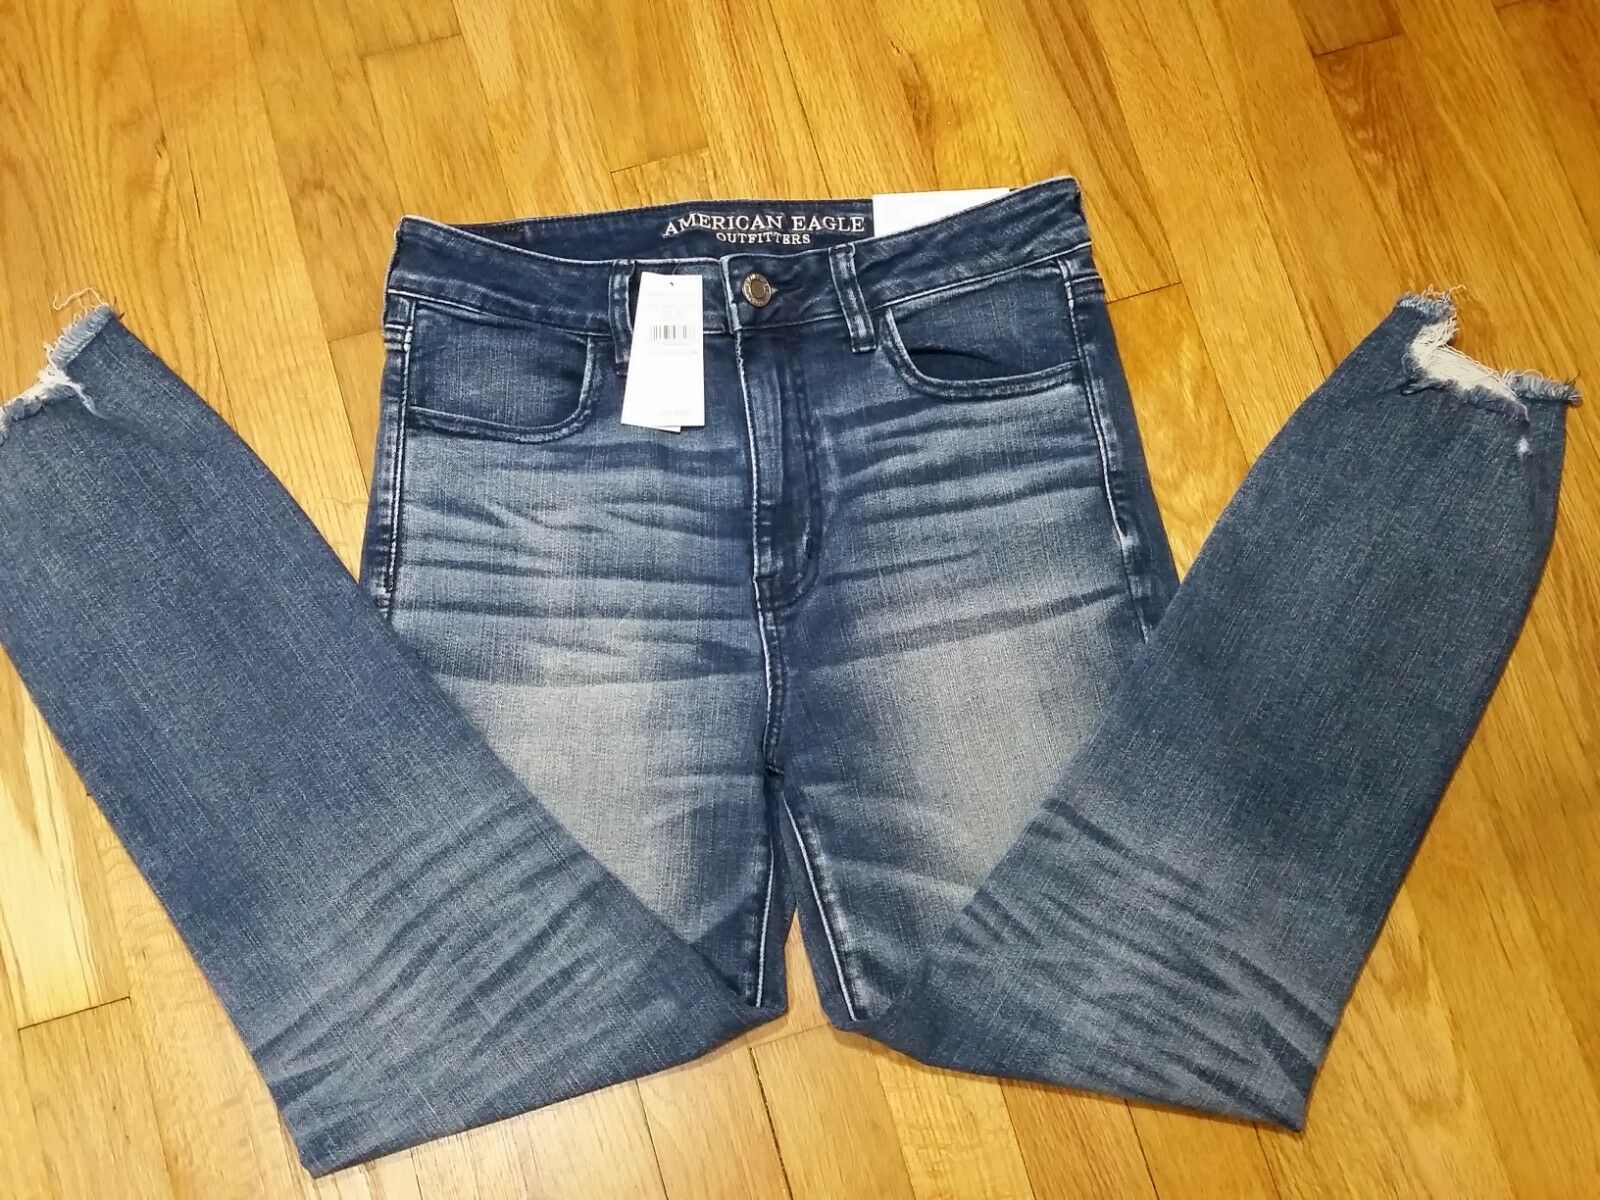 American Eagle Hi Rise Jegging Crop Jeans Size 20 r Next Level Stretch X NWT